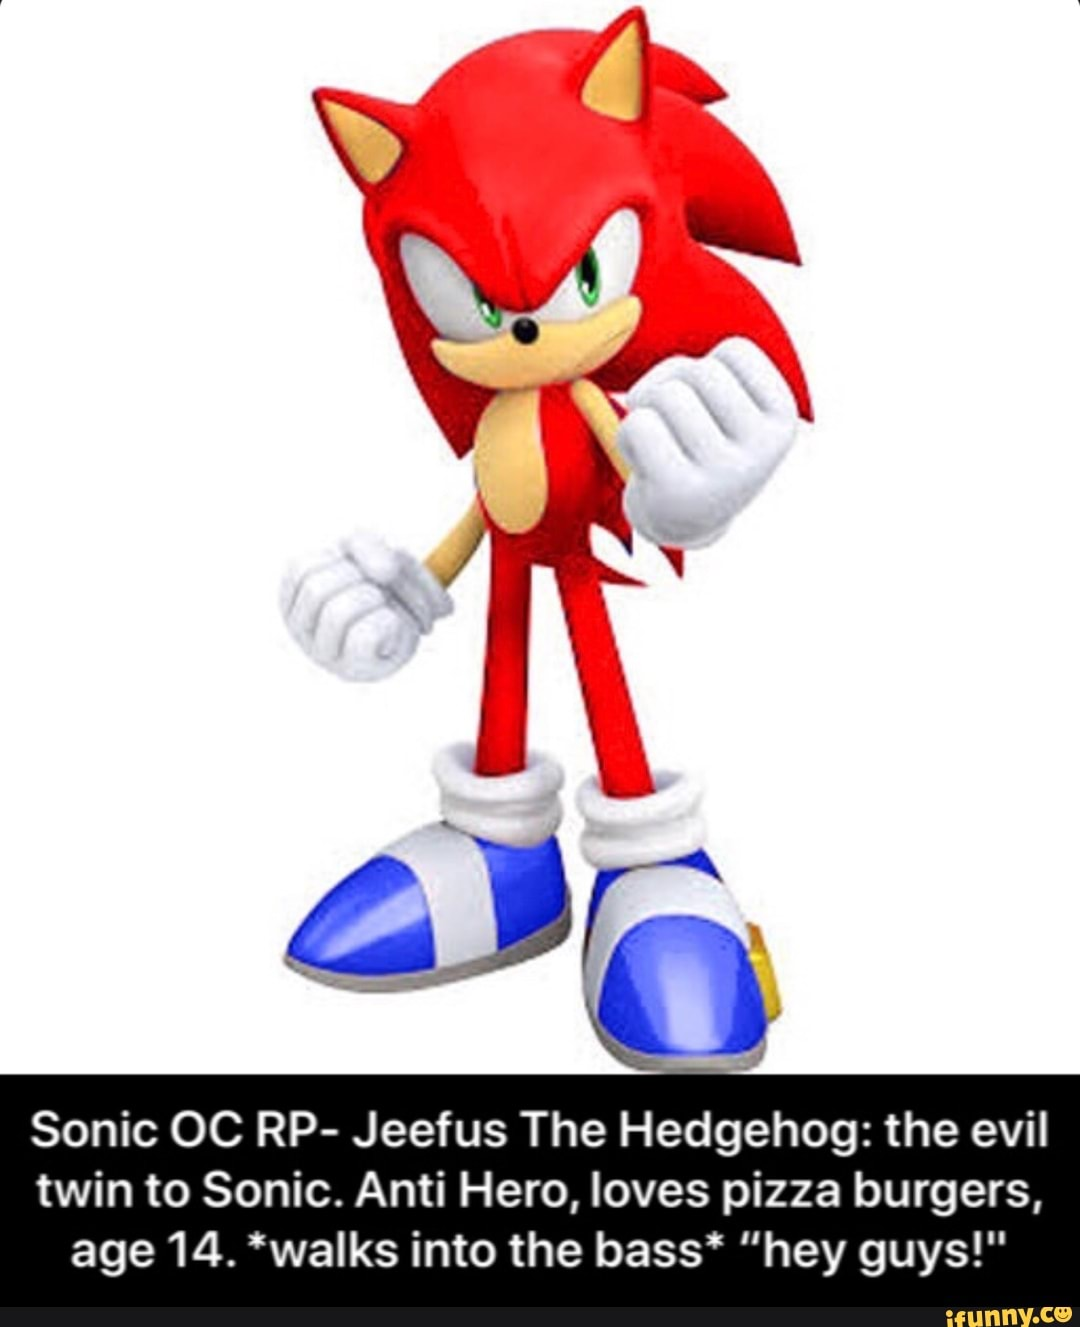 Sonic Oc Rp Jeefus The Hedgehog The Evil Twin To Sonic Anti Hero Loves Pizza Burgers Age 14 Walks Into The Bass Hey Guys Ifunny